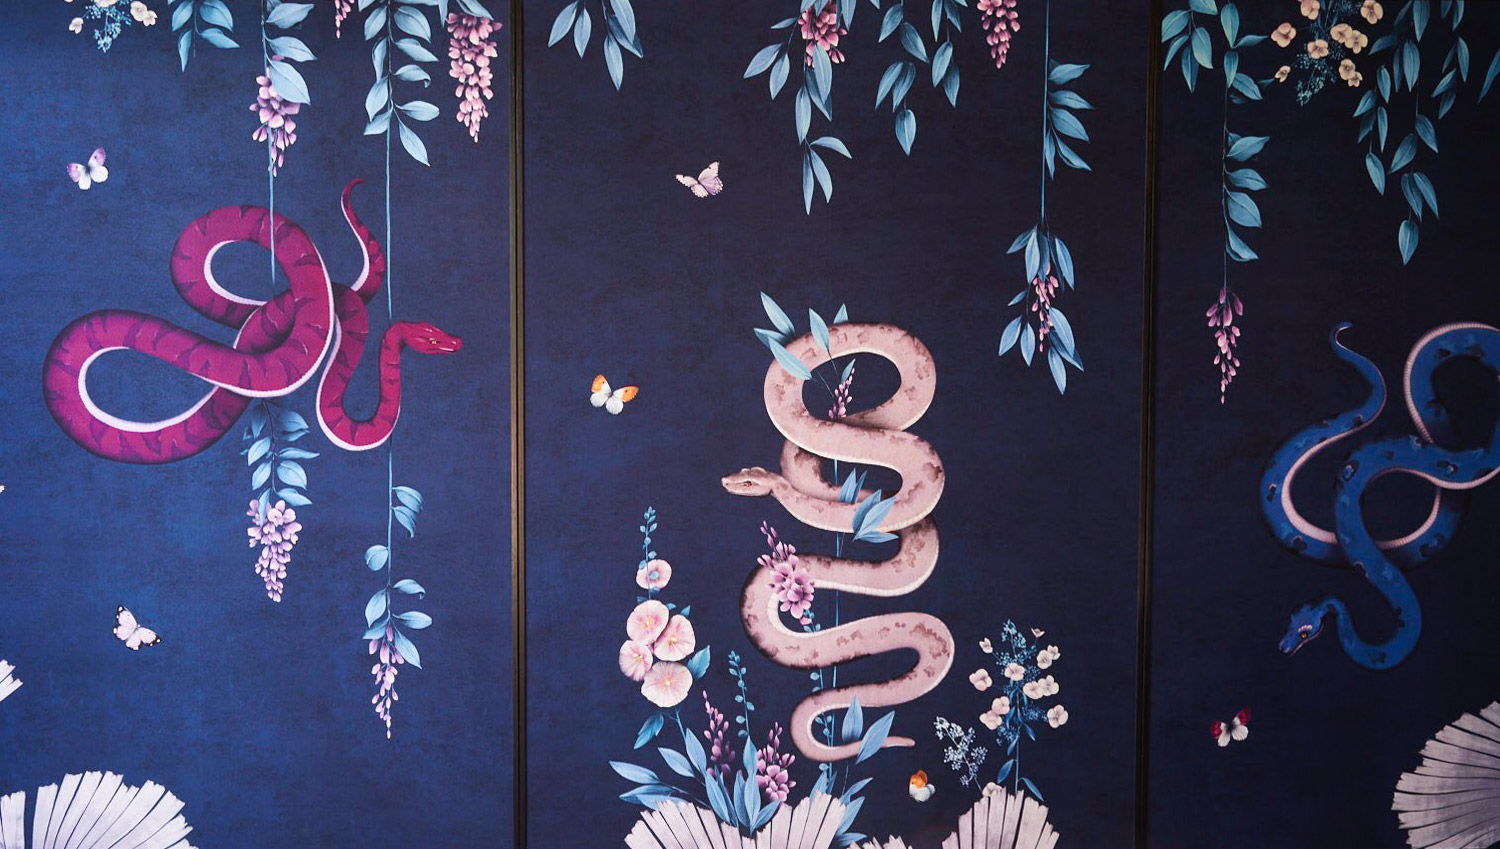 Blue and Pink Silk Panels with Snakes Design by Trilbey Gordon